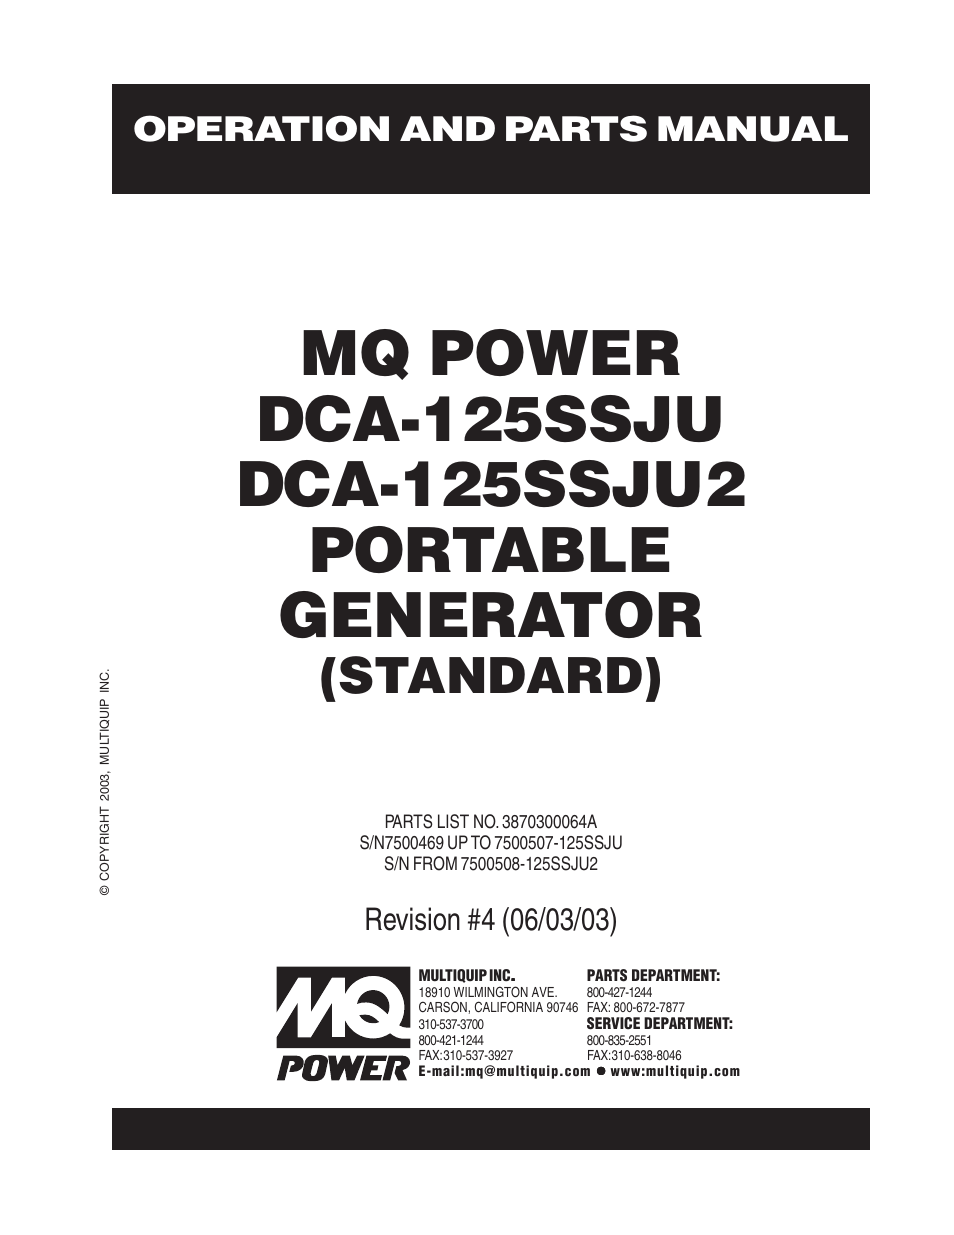 multiquip mq power portable generator standard dca 125ssju page1 mq power parts dca 25ssiu2 mq power generator dca 25ssiu2 mq power  at bakdesigns.co